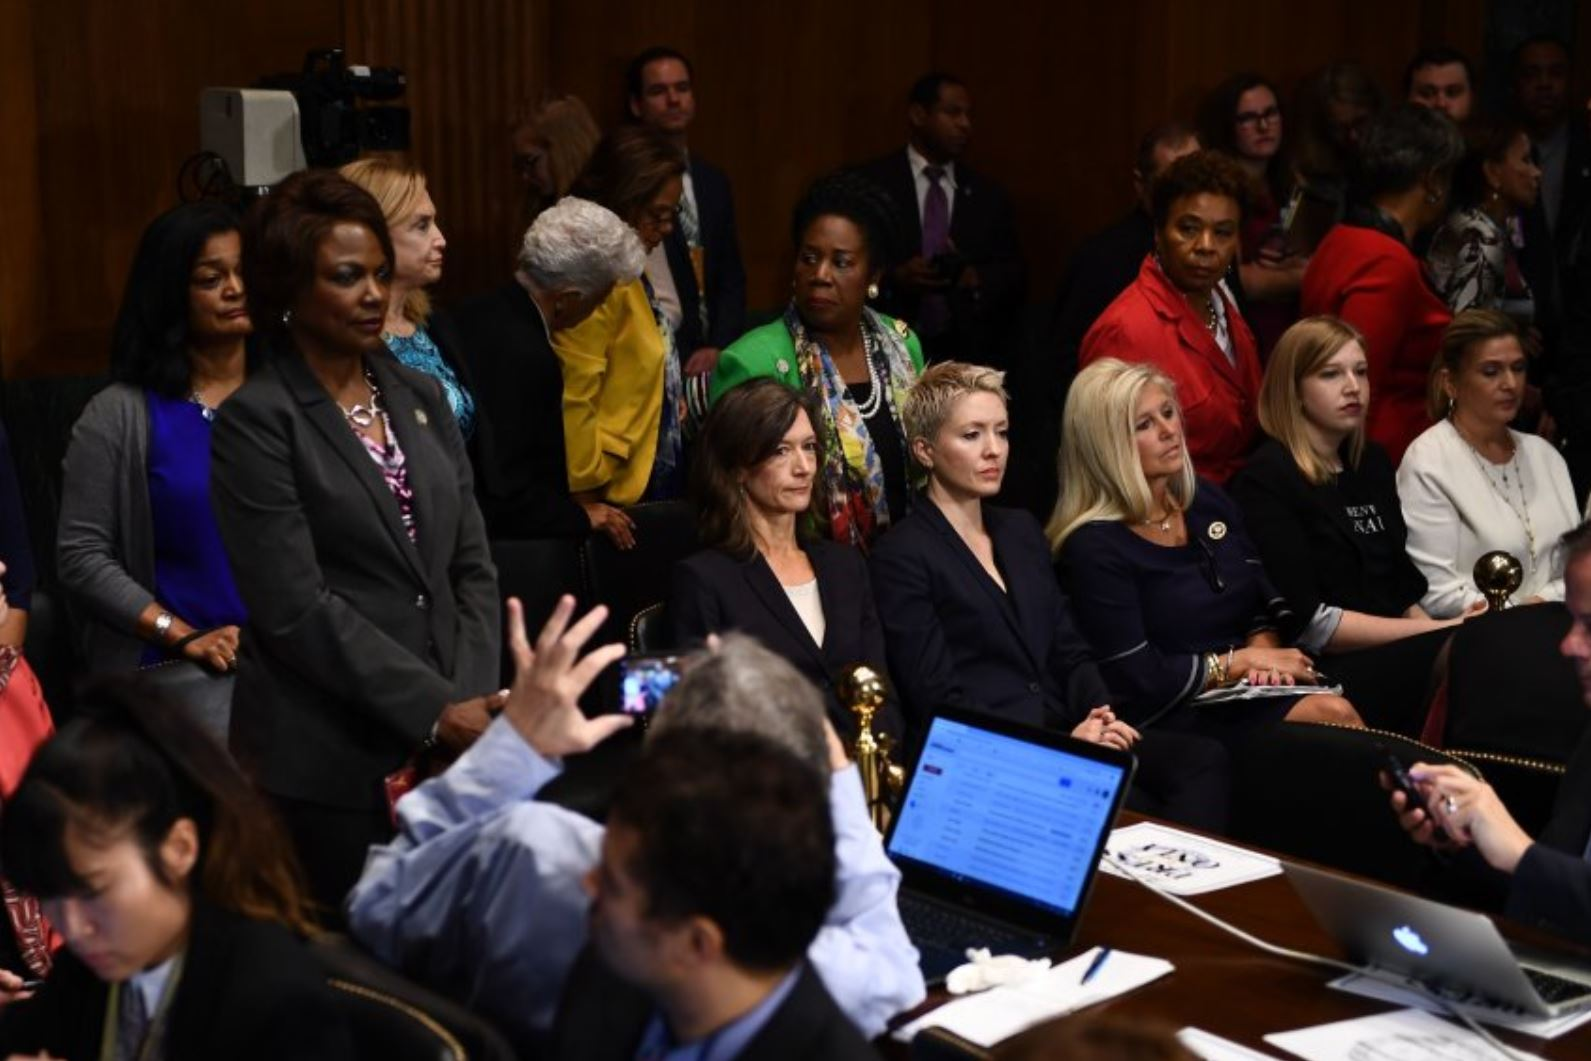 Dem Congressional Members Stand Silently in Protest 2018.JPG